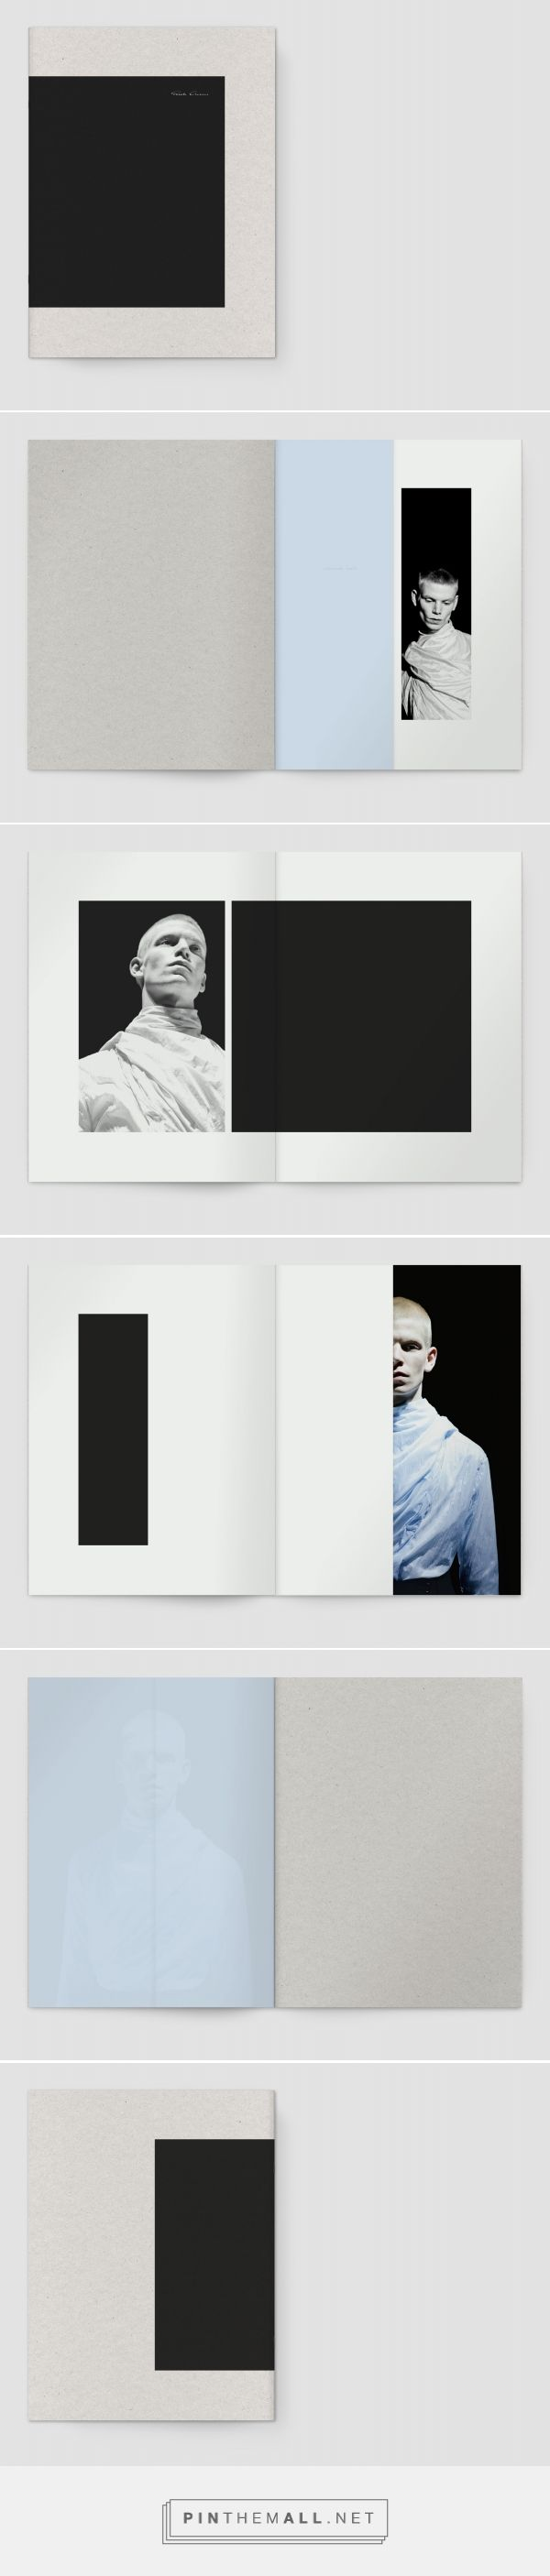 vertical strips of visuals that frame the written piece (which can perhaps be in the center)